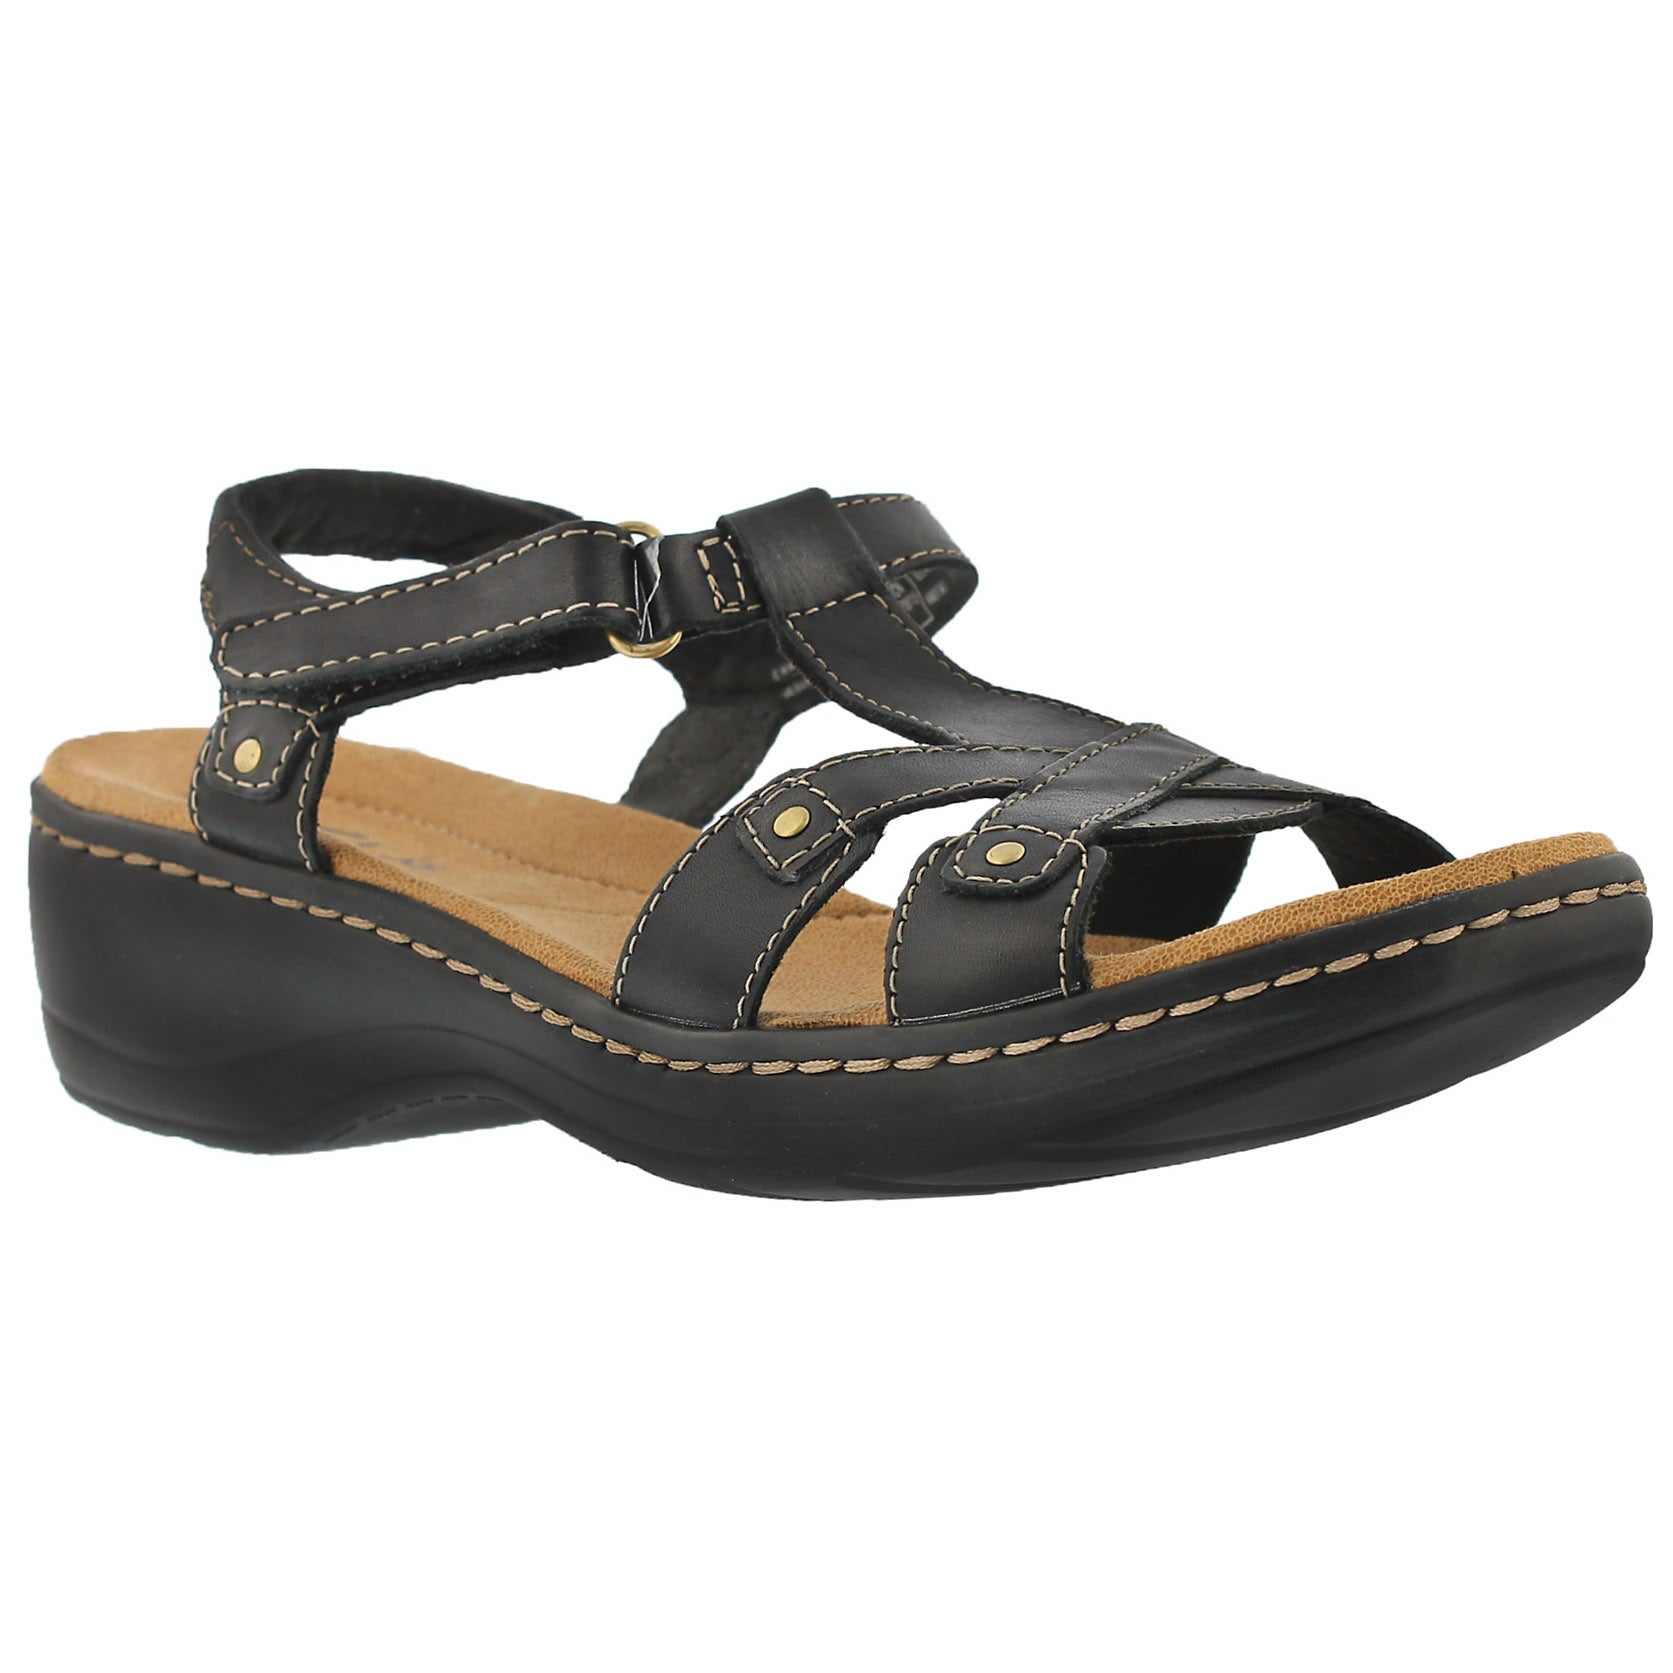 Women's FLUTE black casual sandals